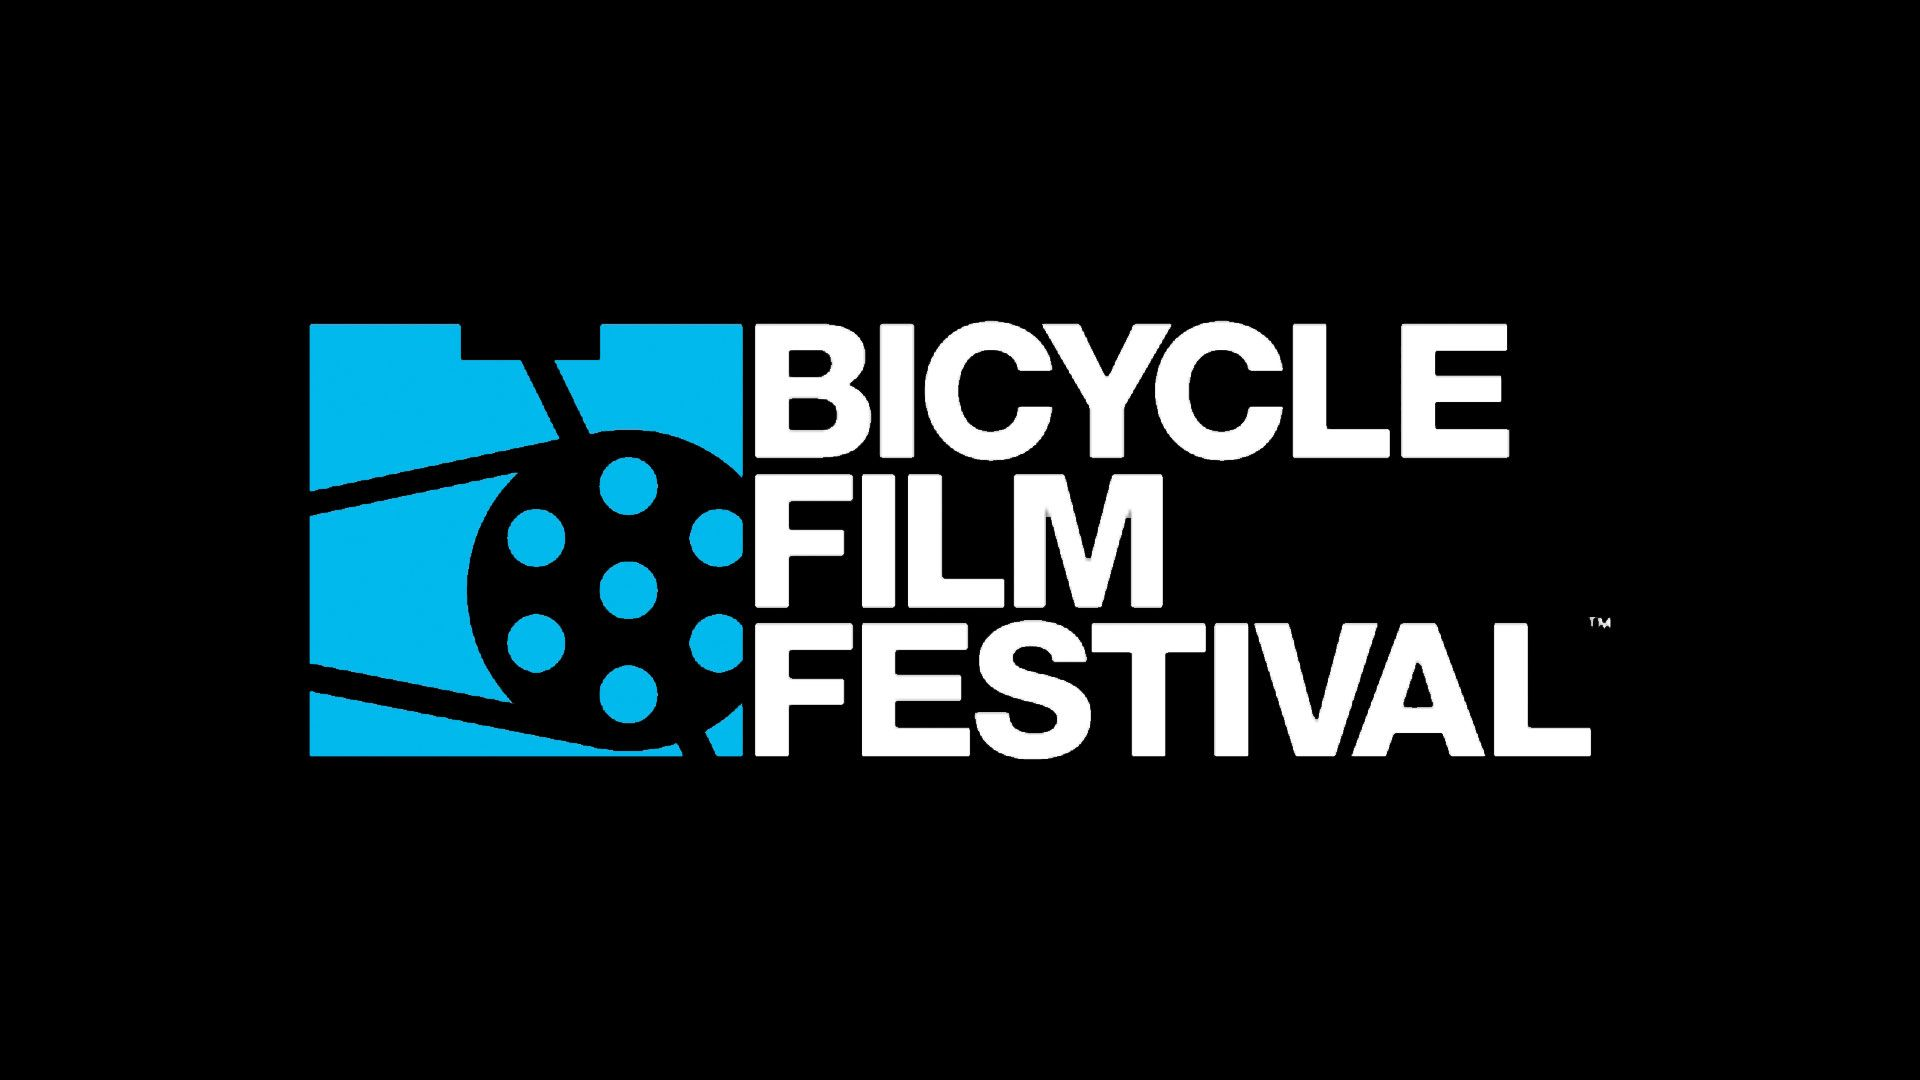 Bicycle Film Festival (site to check city and schedule of festival, plus trailers etc)